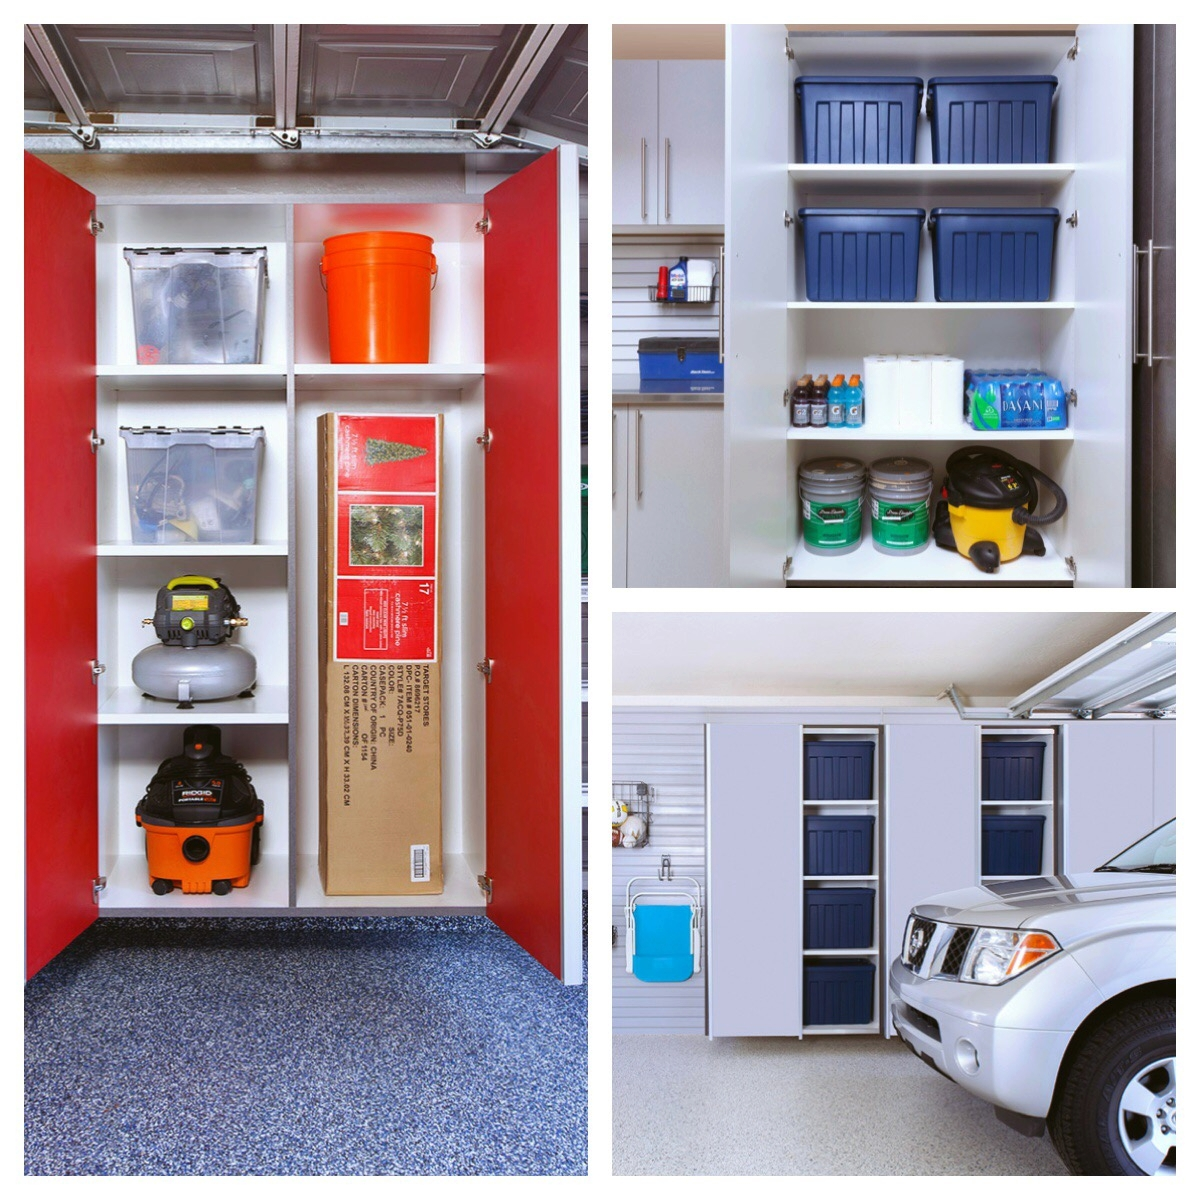 If space permits, use storage boxes on garage shelving to store off-season clothes. If your garage is overflowing, we can help with that, too! Call Closets of Tulsa for garage storage ideas.